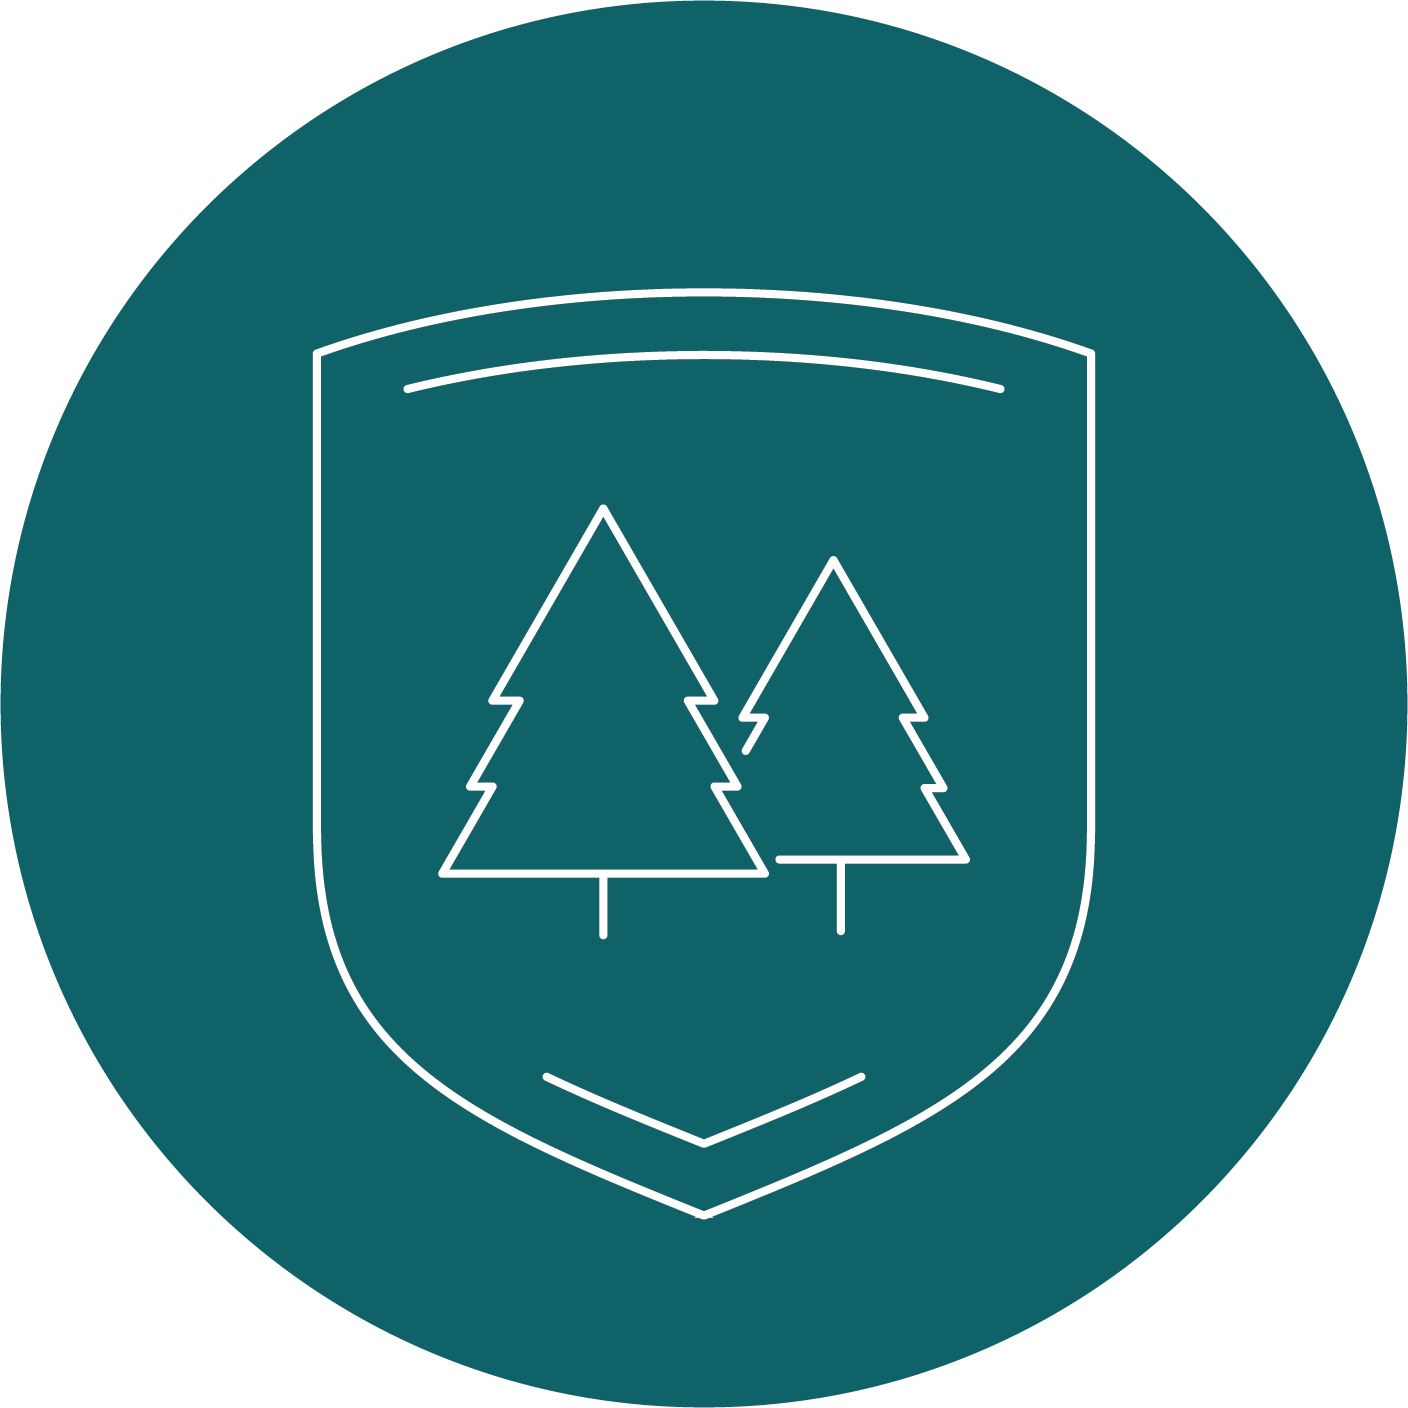 shield with trees